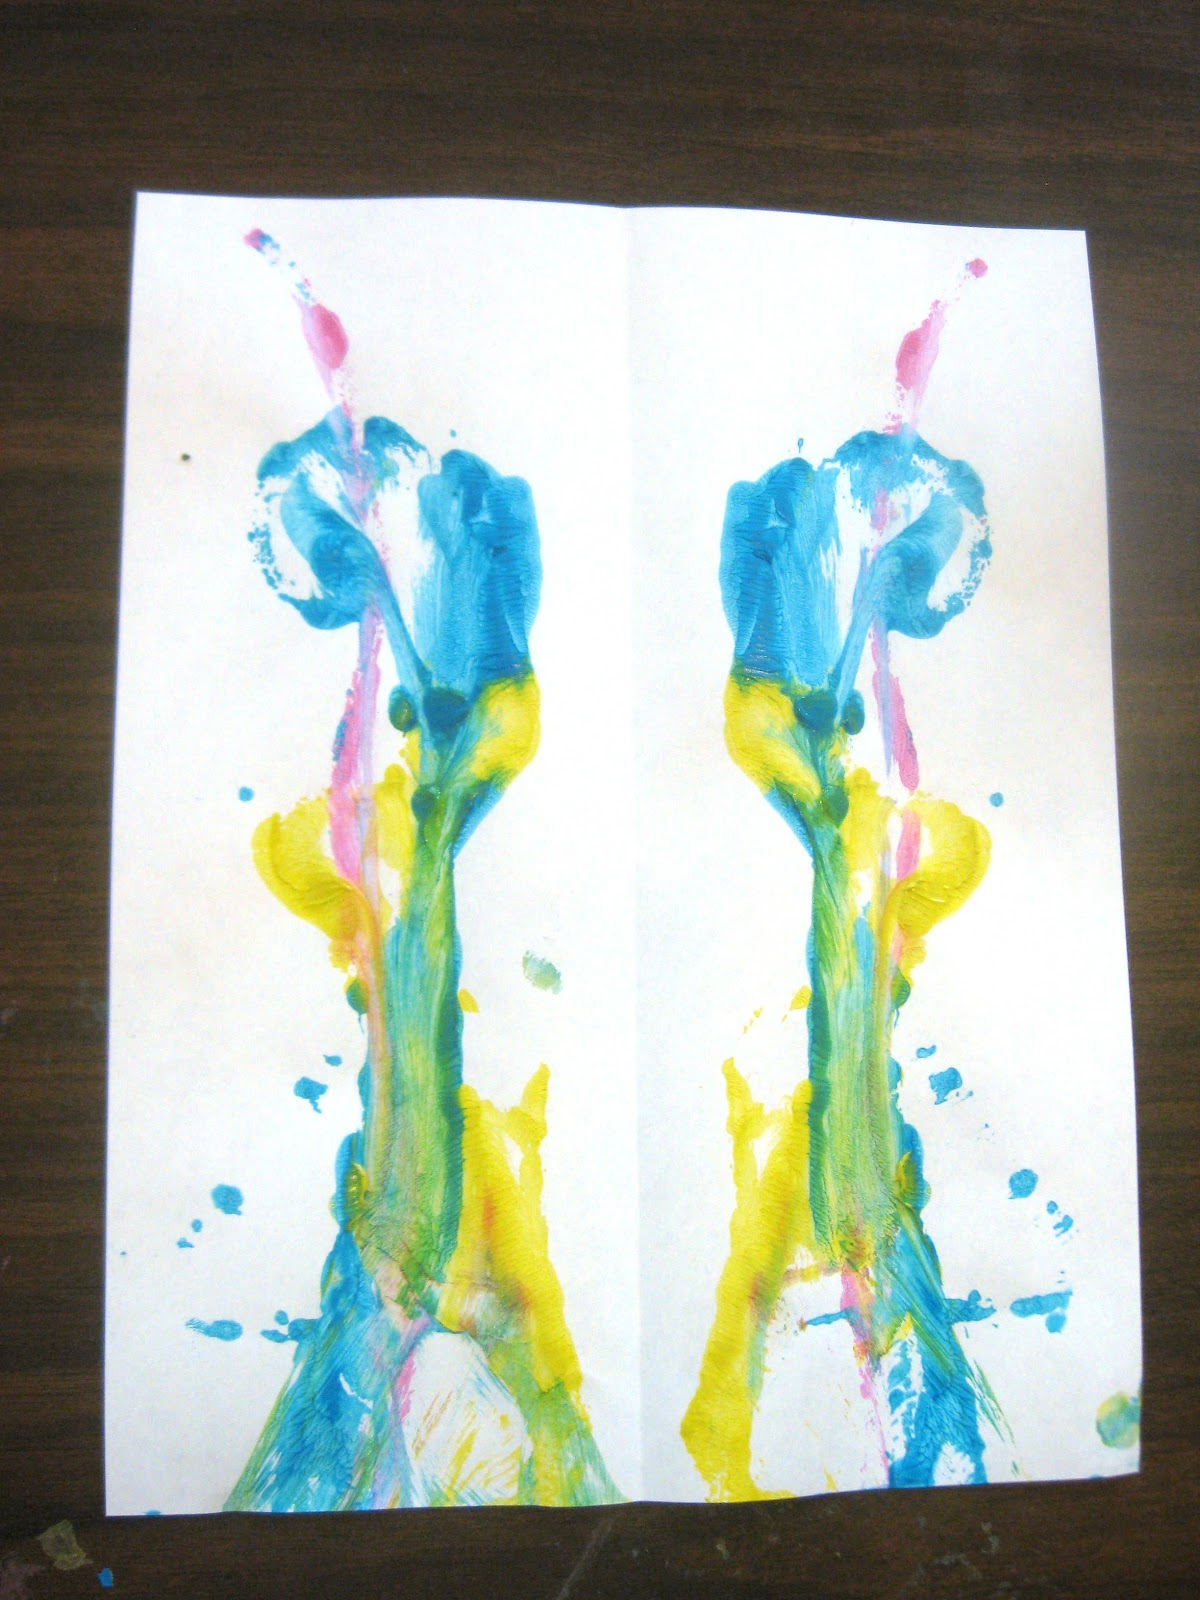 Acrylic Paint For Etch Printing